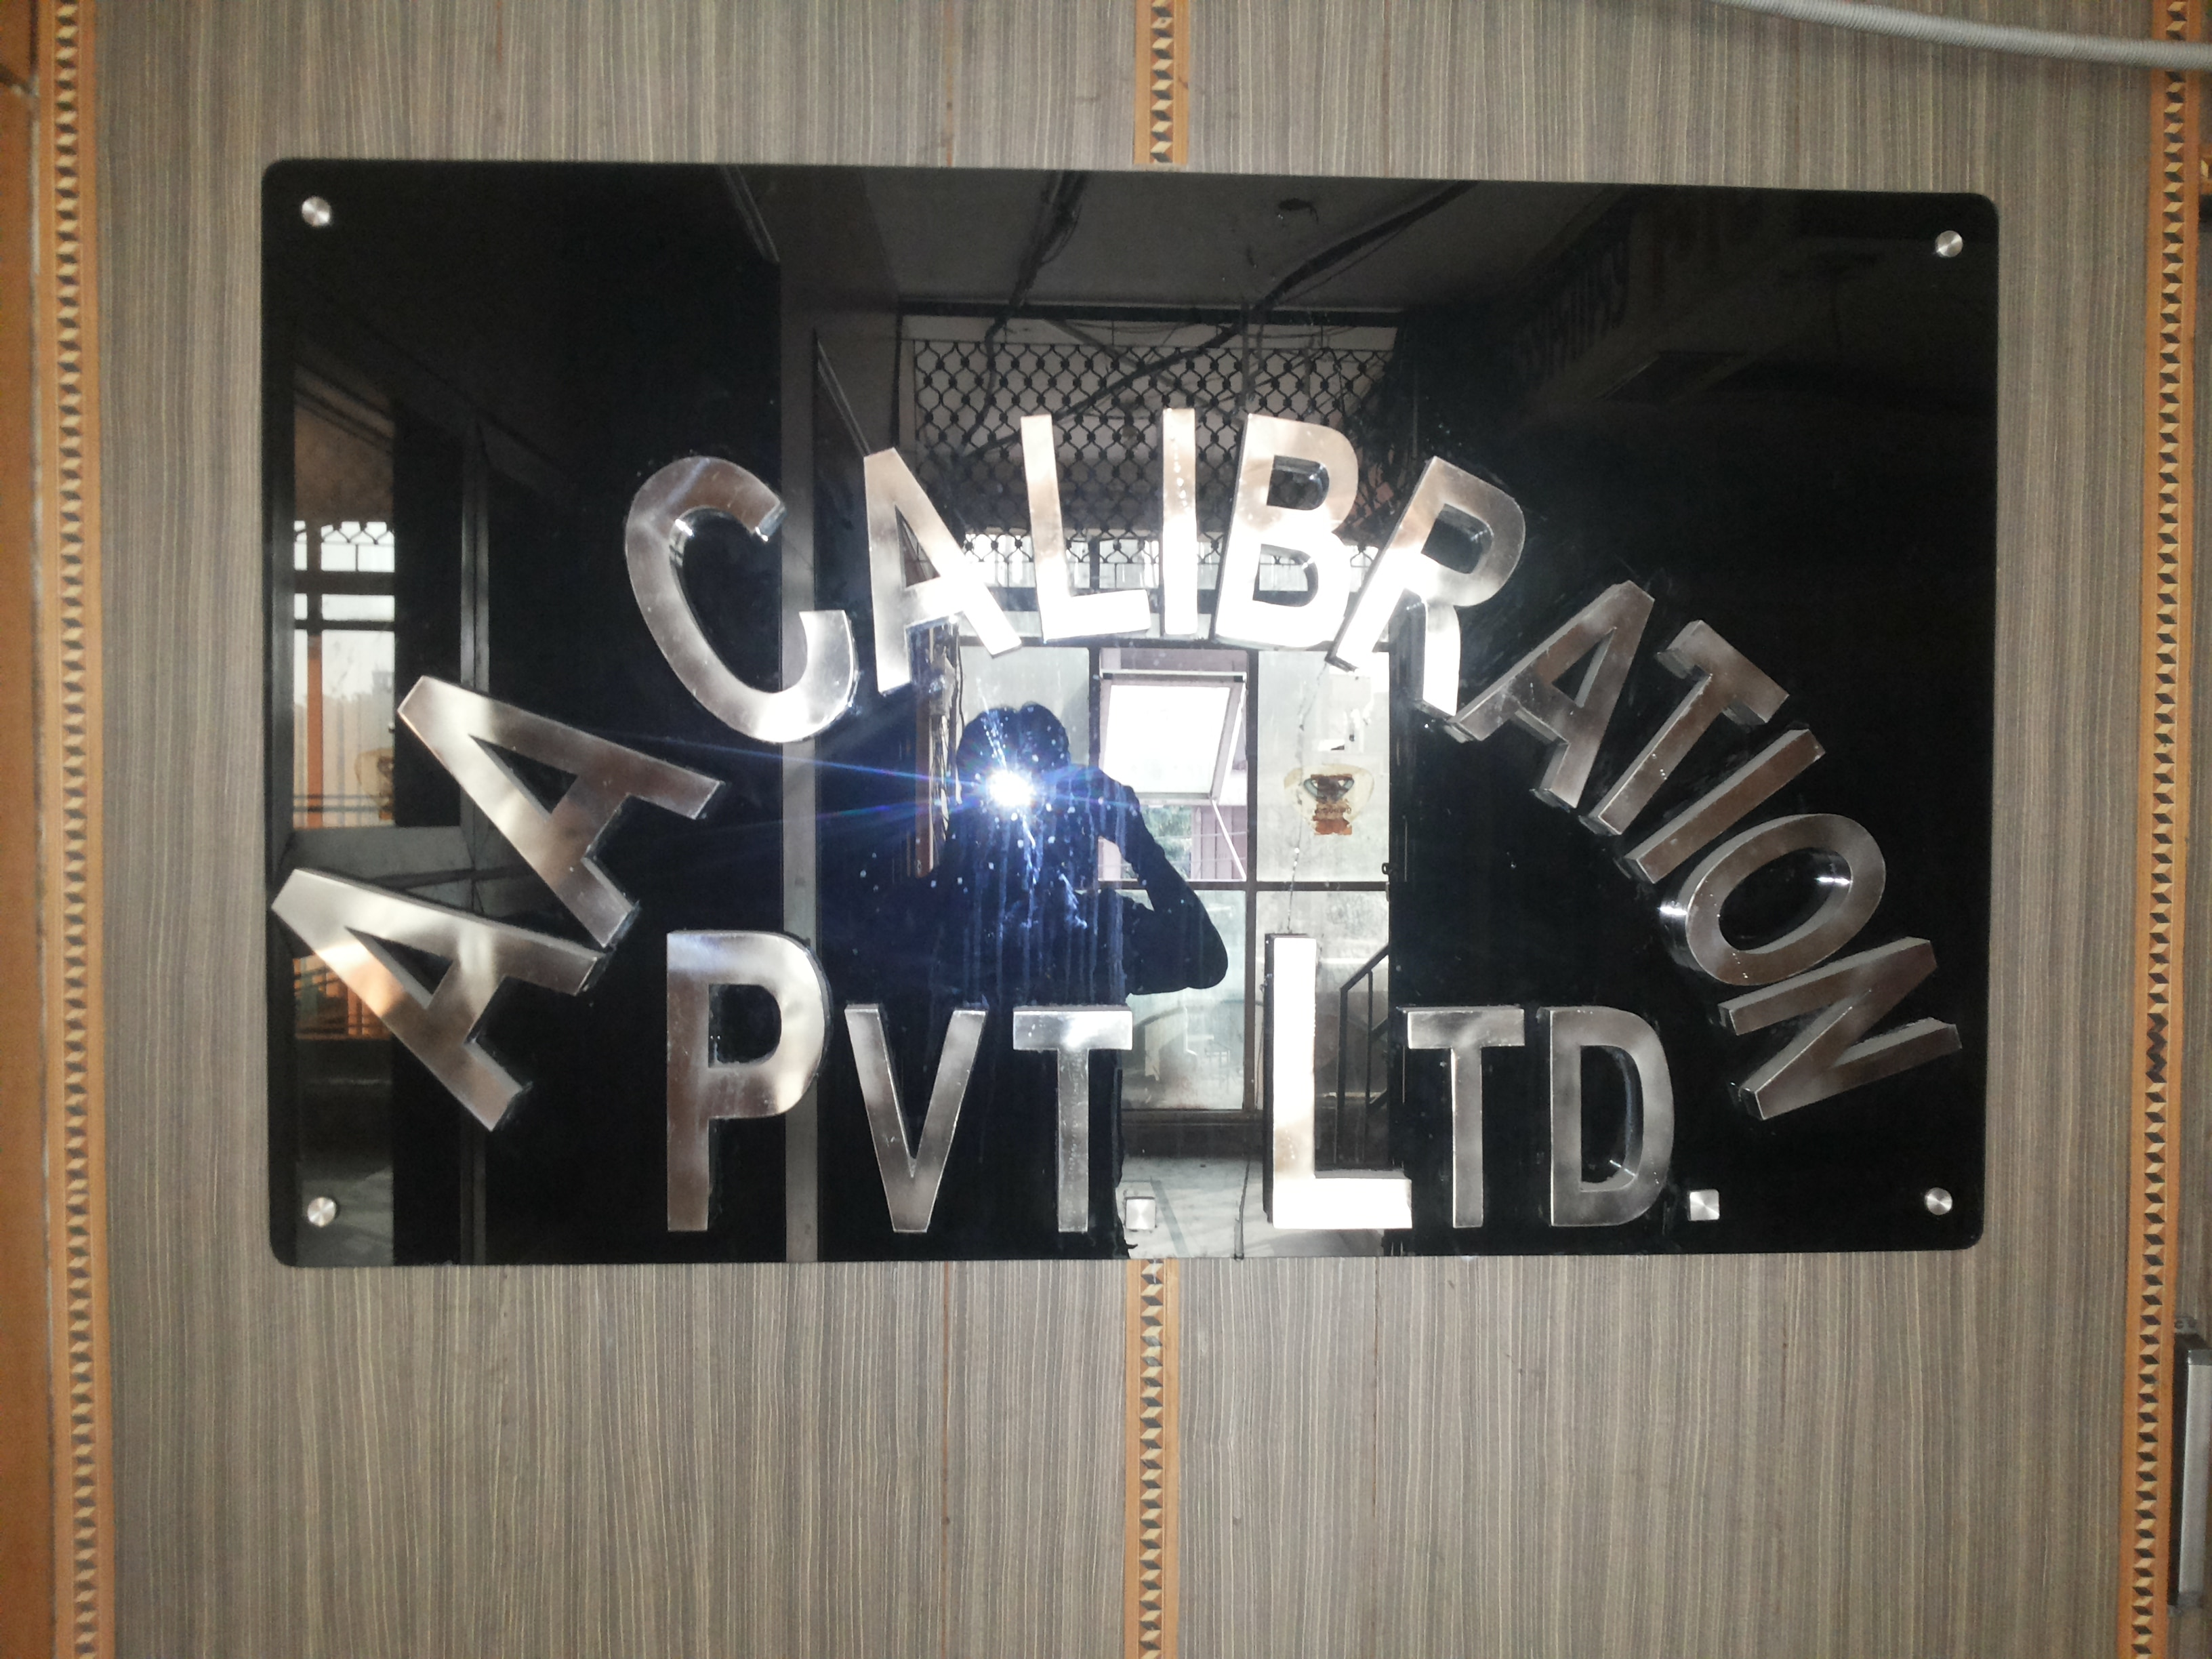 A.A calibration Pvt Ltd